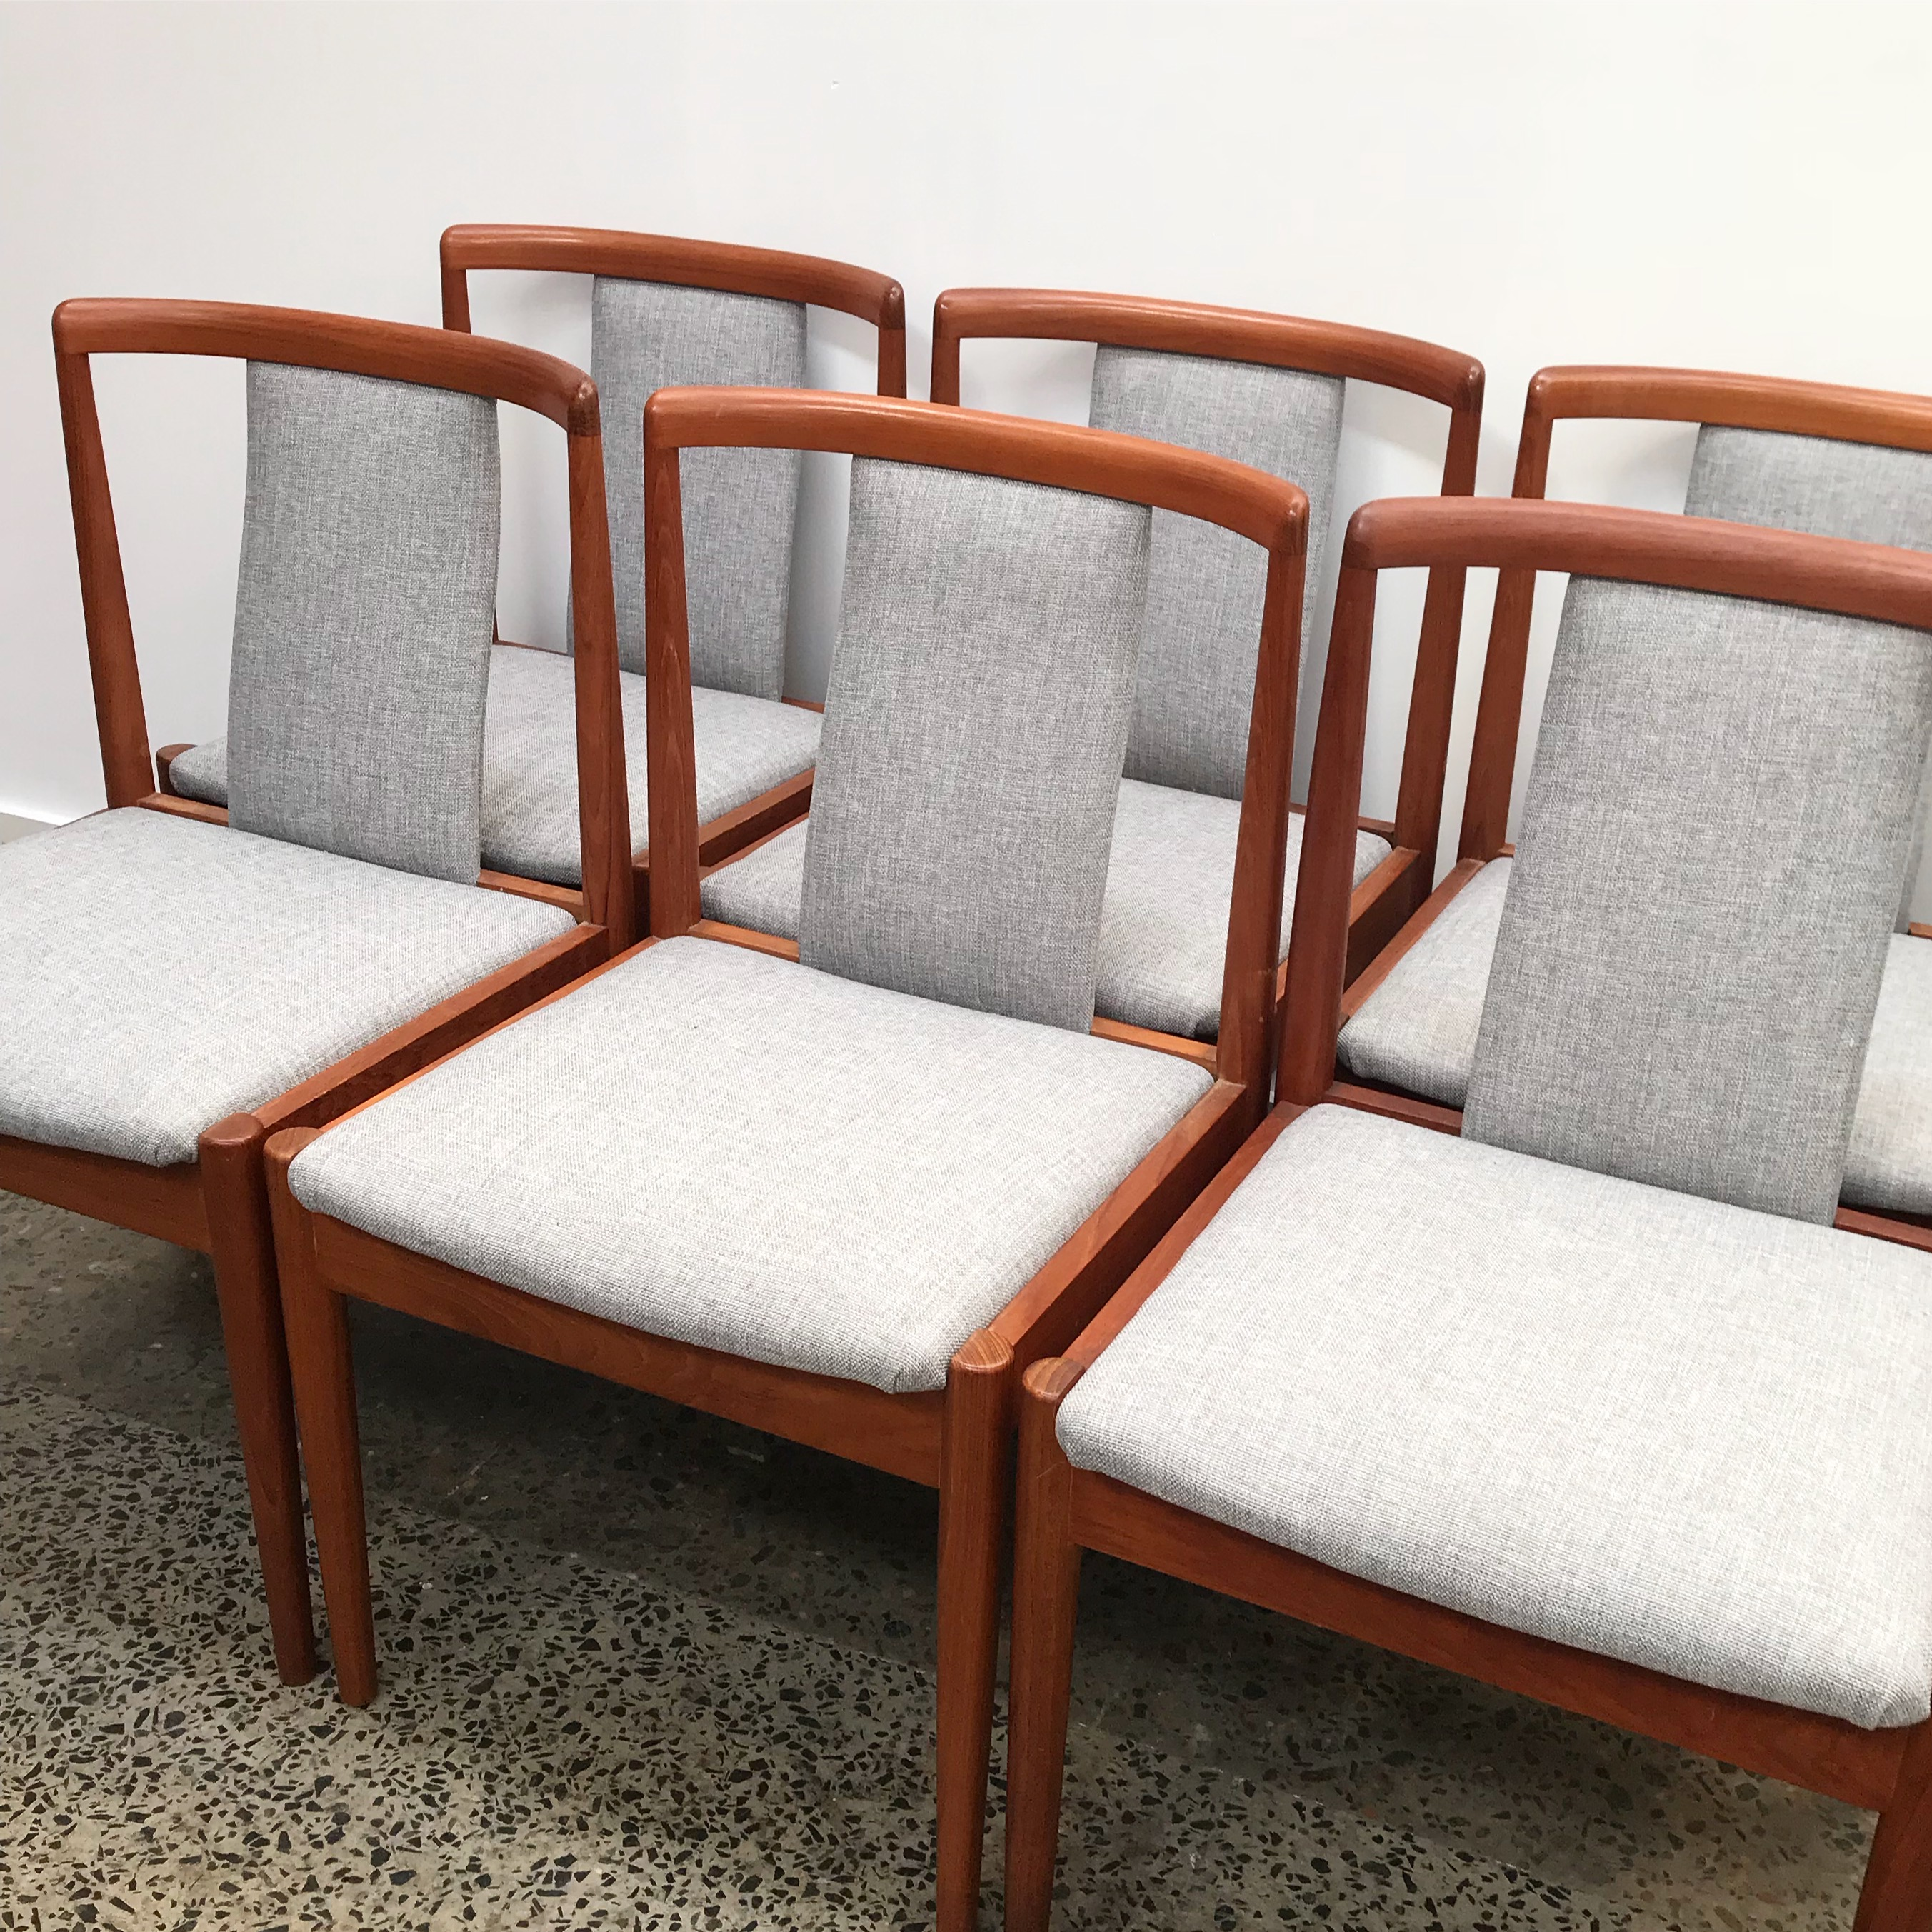 Parker T-back chairs